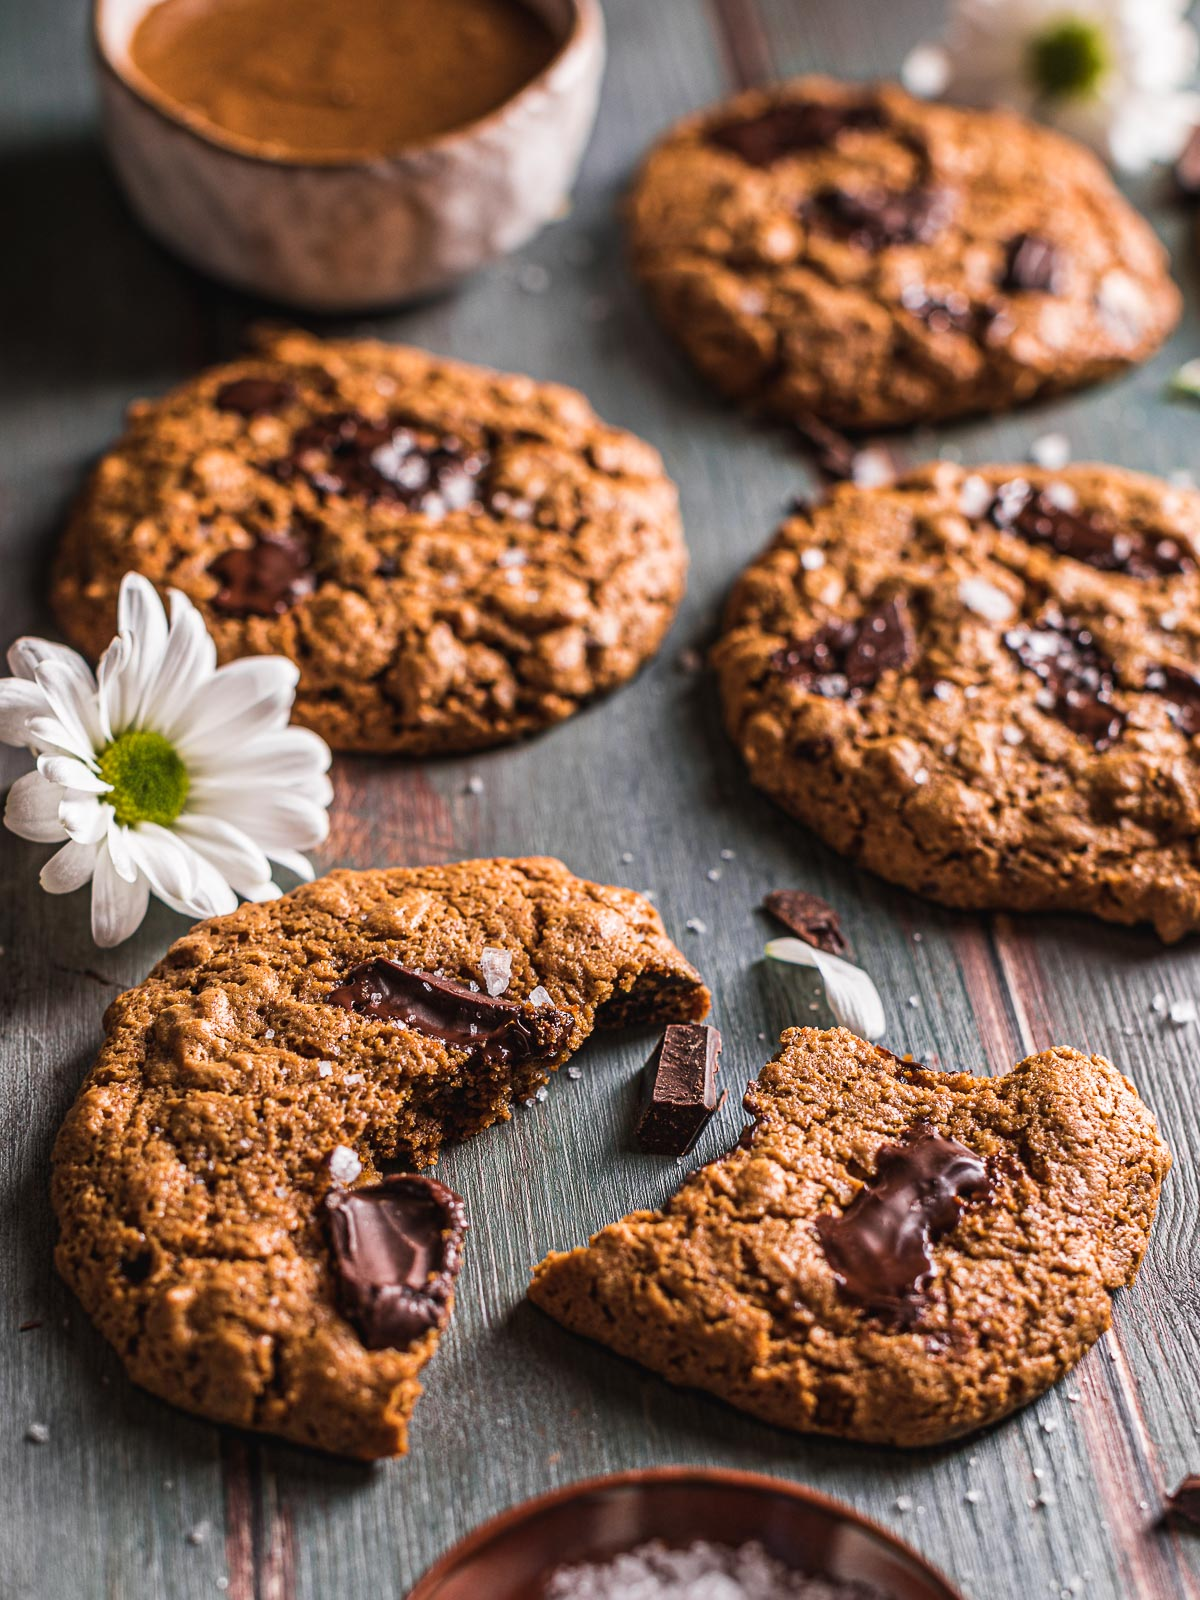 how to make Healthy Vegan Oatmeal Chocolate Chip Cookies recipe come fare Cookies vegani senza glutine al cioccolato senza zucchero raffinato integrali